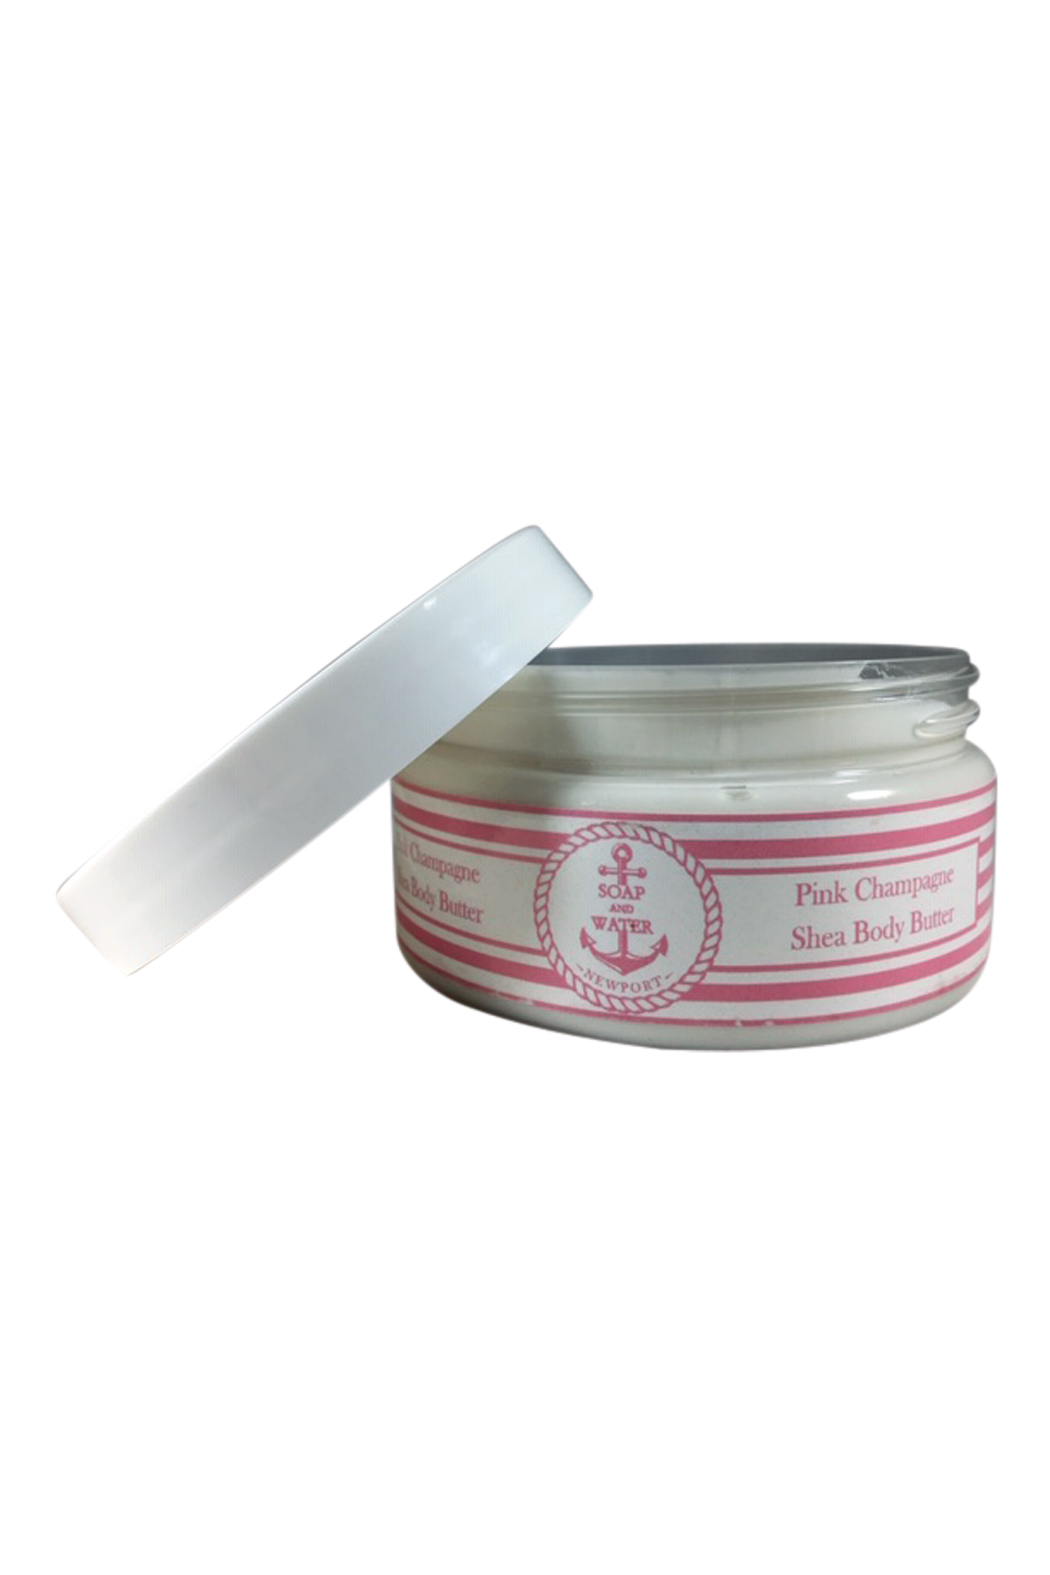 Soap and Water Newport PINK CHAMPAGNE BODY BUTTER - Front Full Image